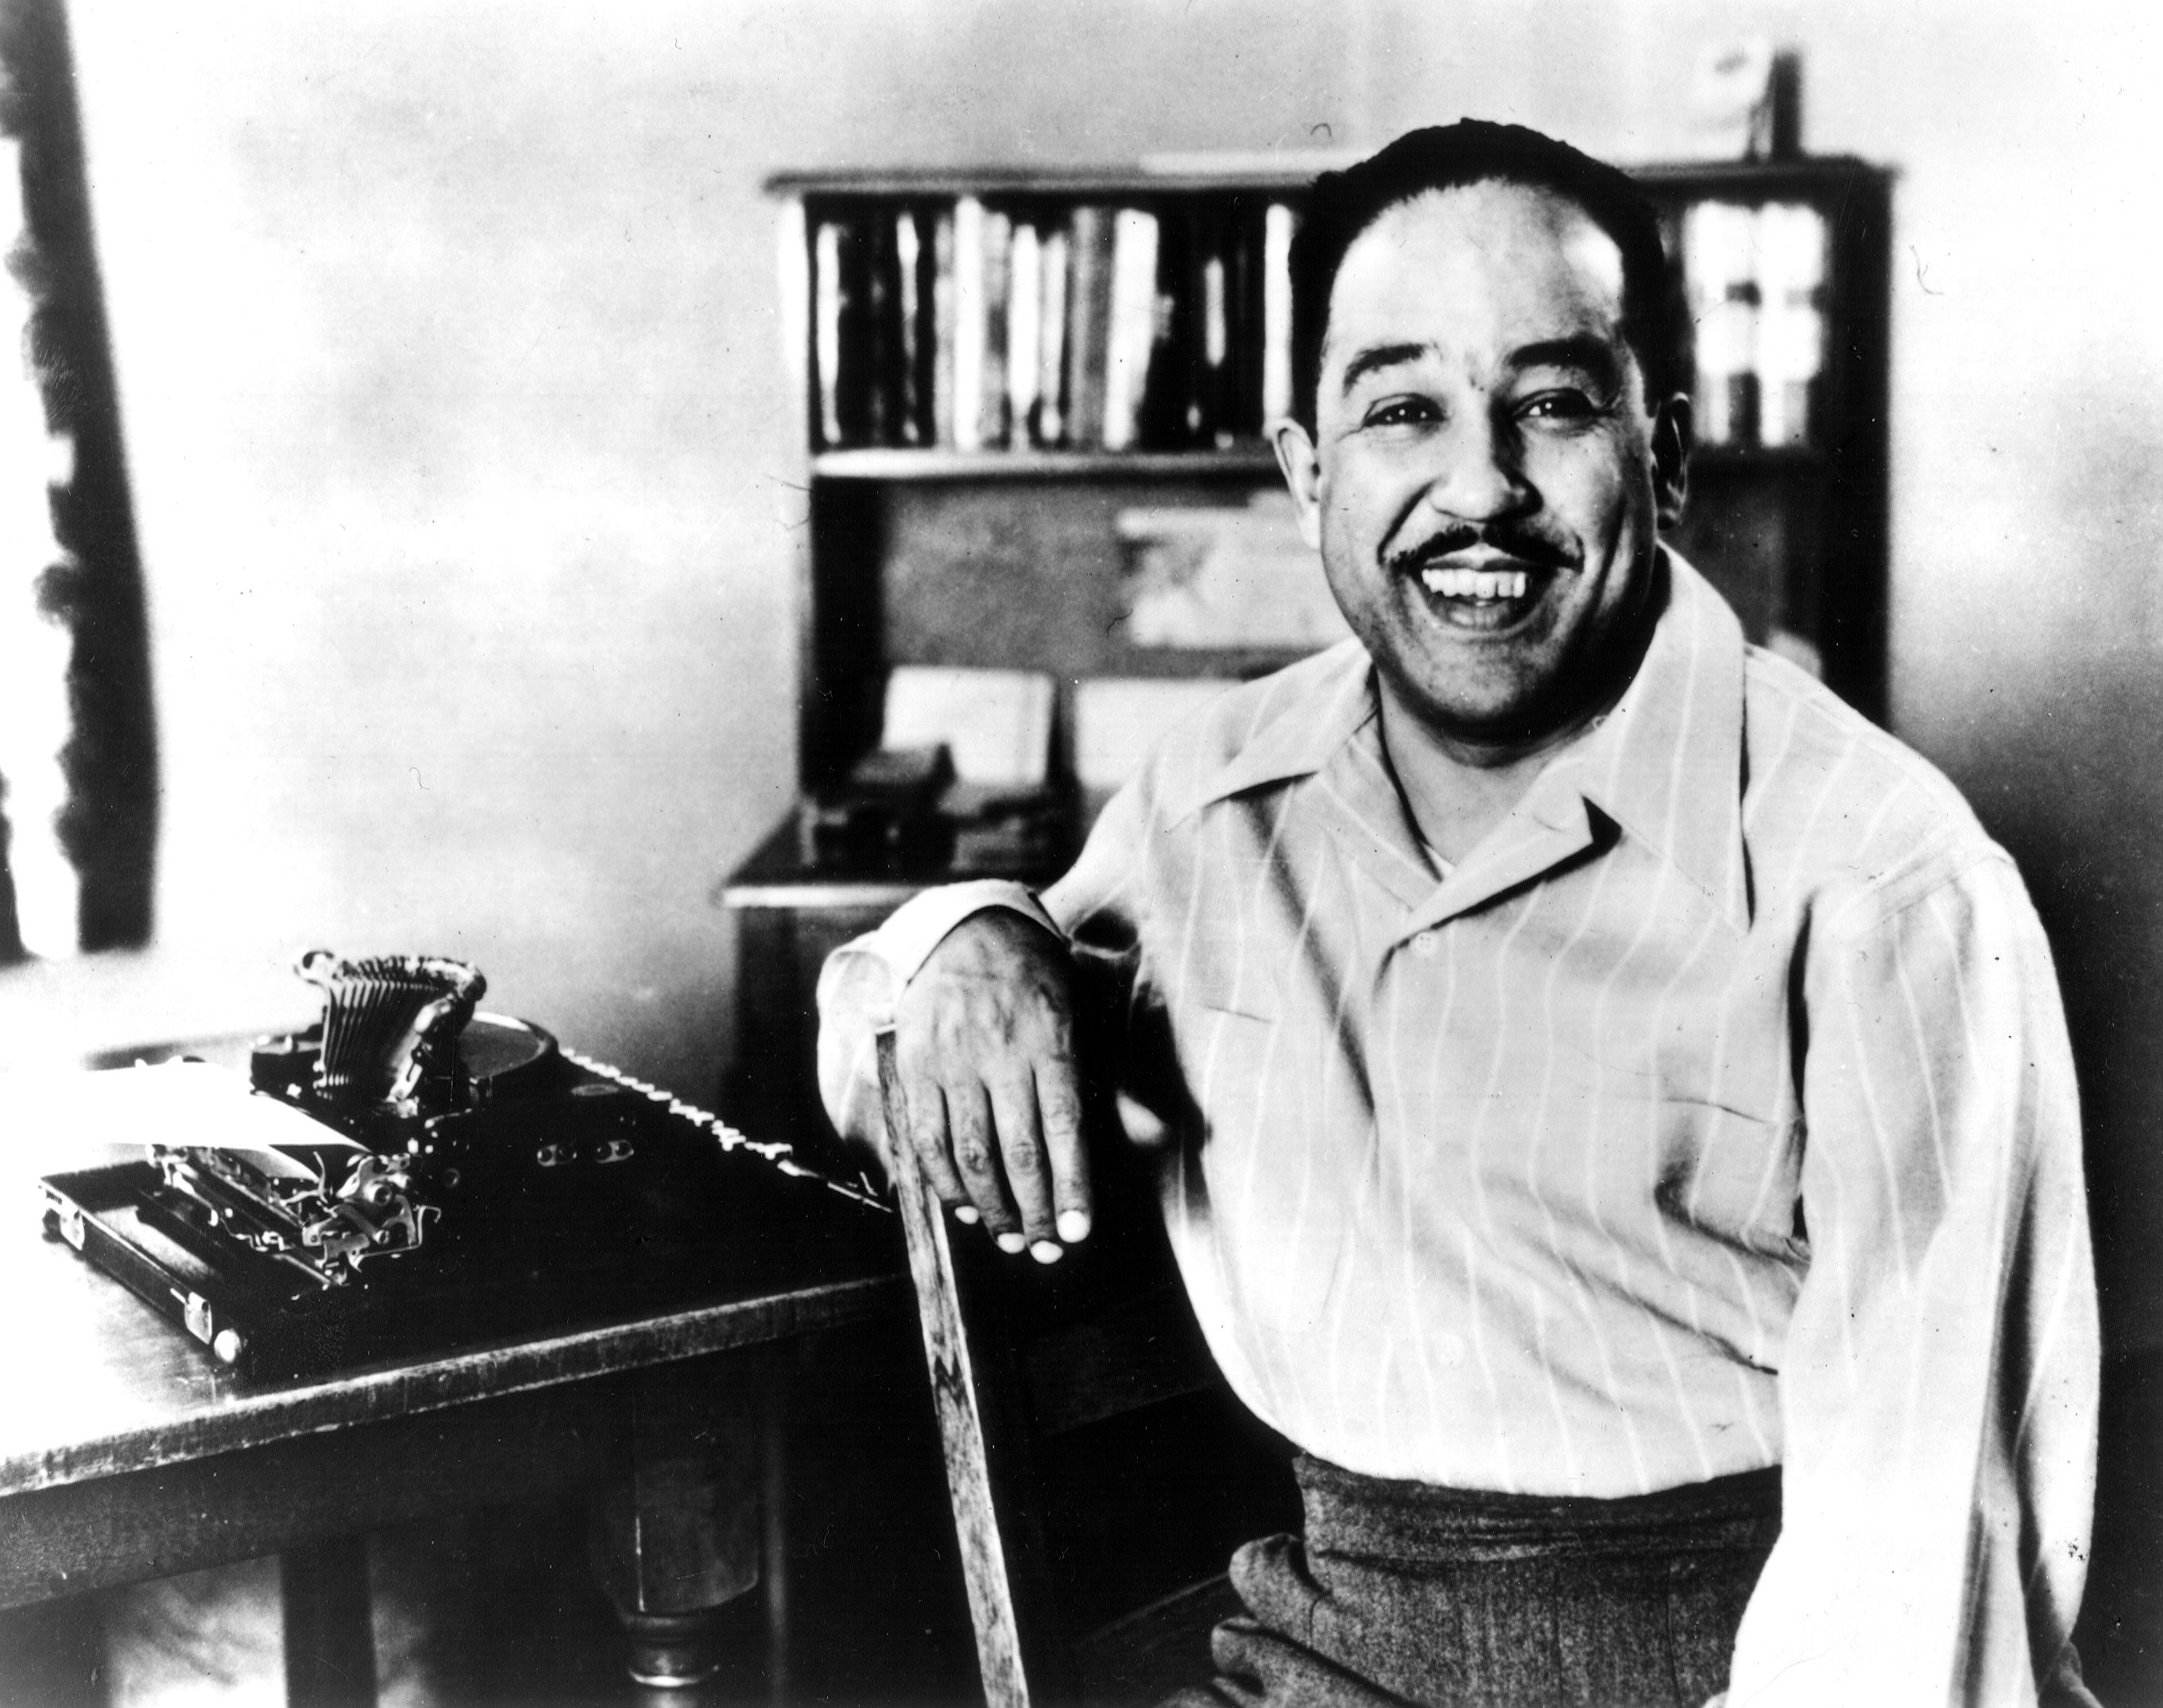 langston-hughes-typewriter And yet I swear this oath, America will be